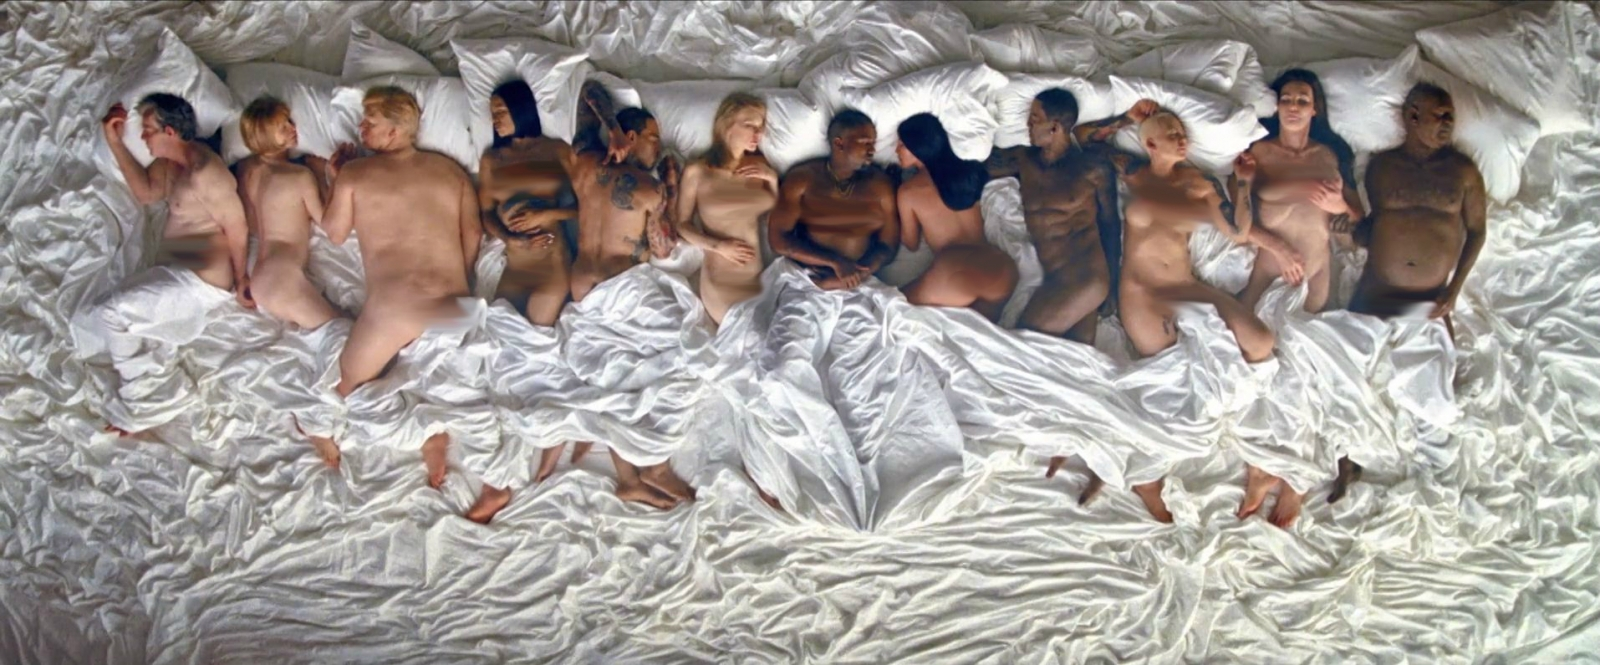 Kanye West Famous Video A Naked Taylor Swift And Amber -3052